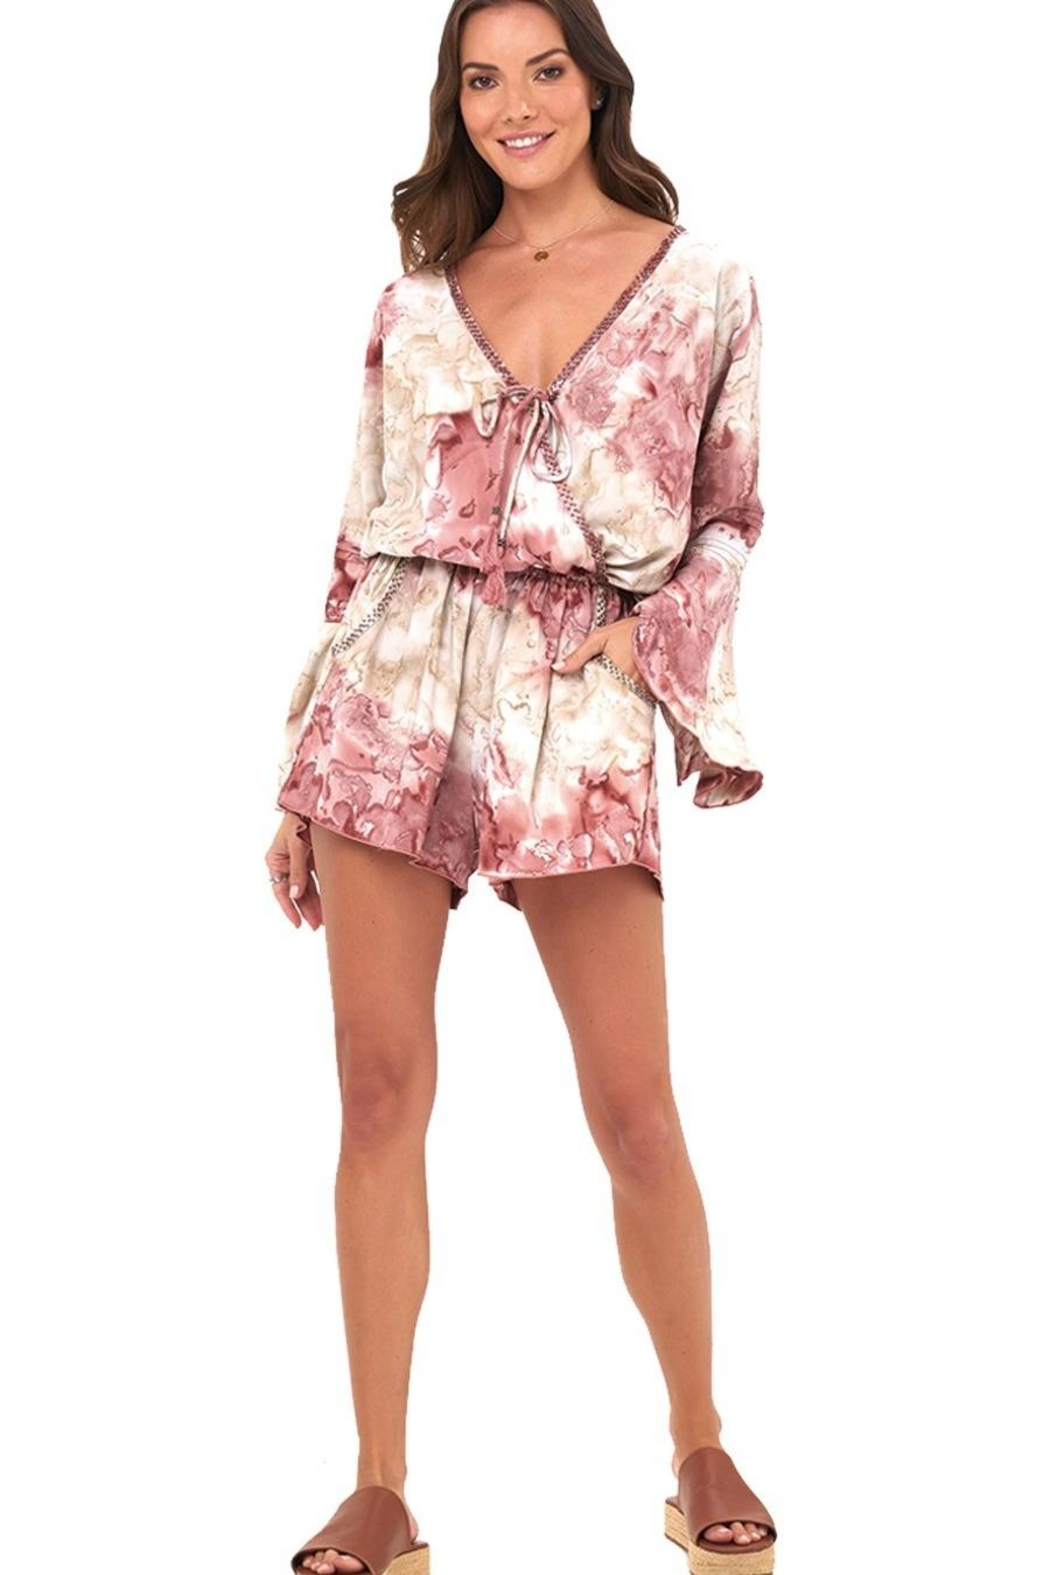 Khush Clothing Kaia Beaded Romper - Side Cropped Image